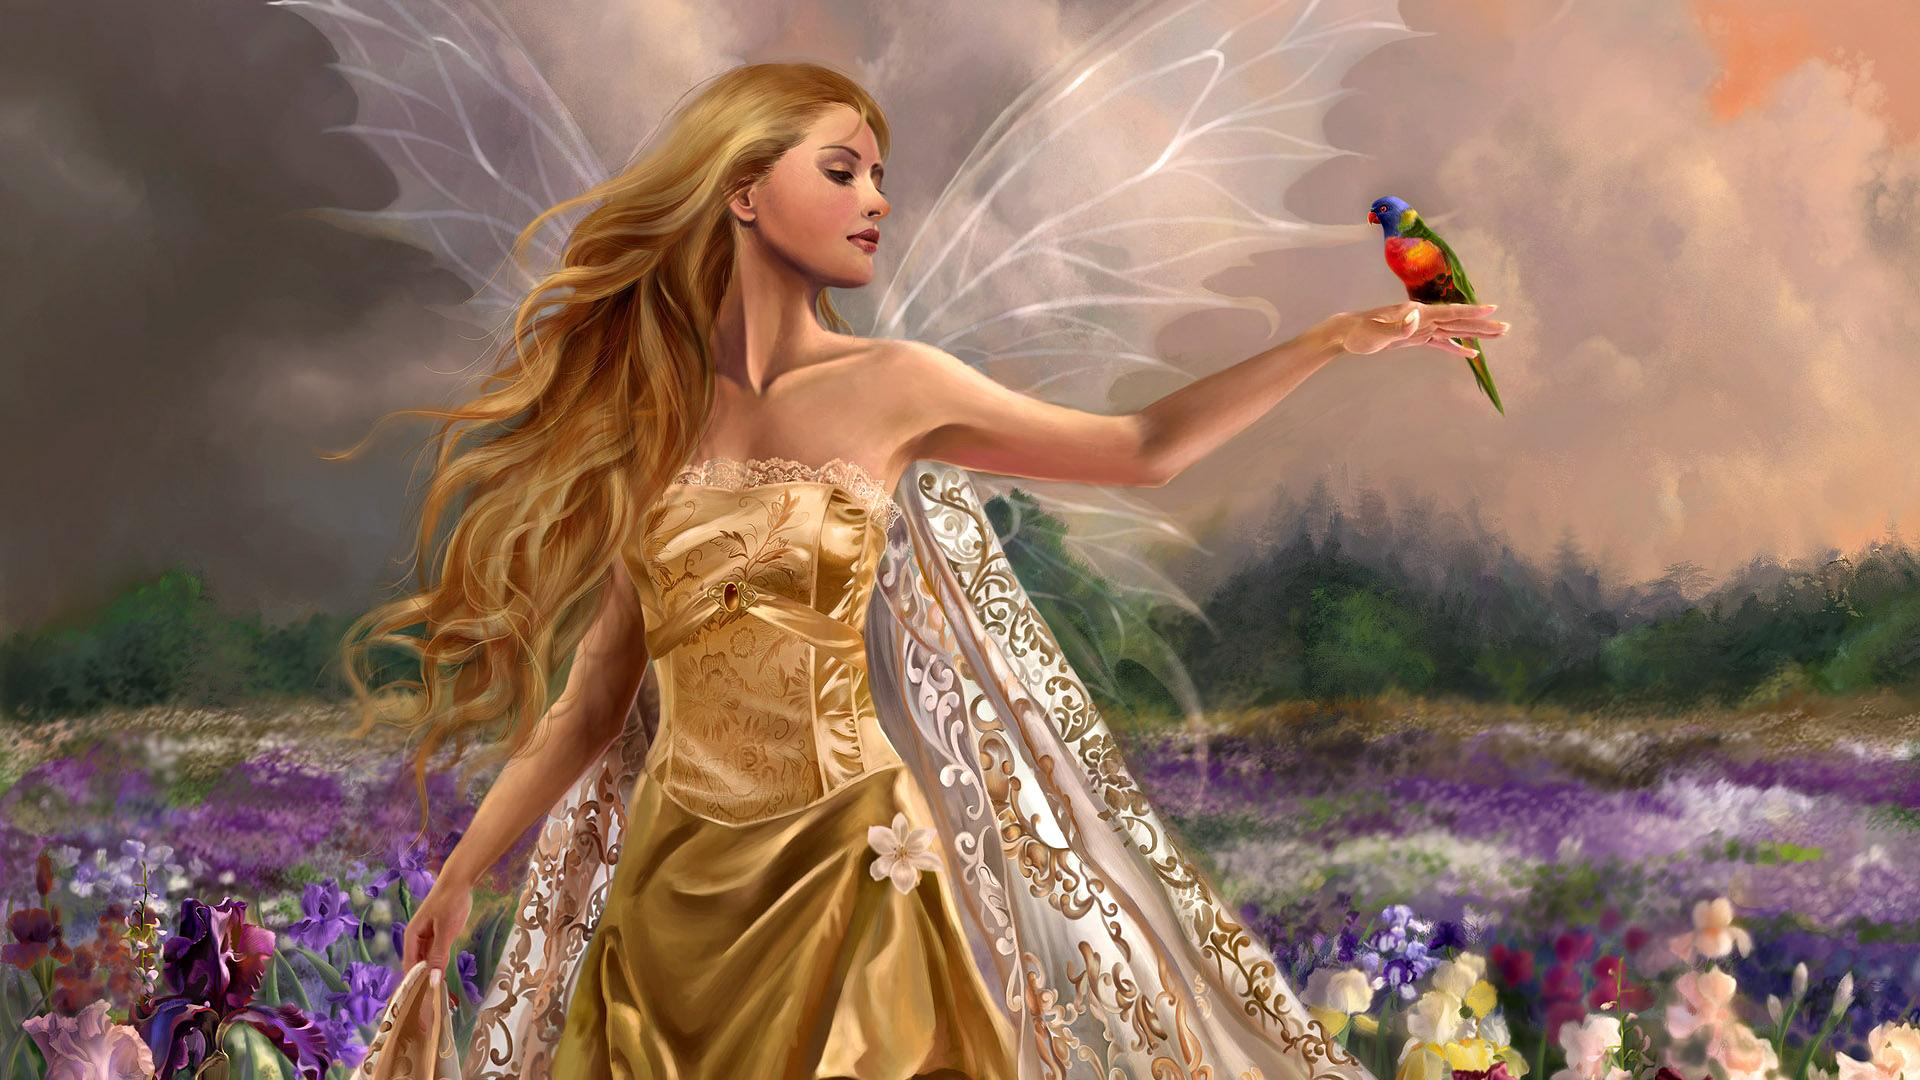 Fairy Background Wallpaper High Definition High Quality